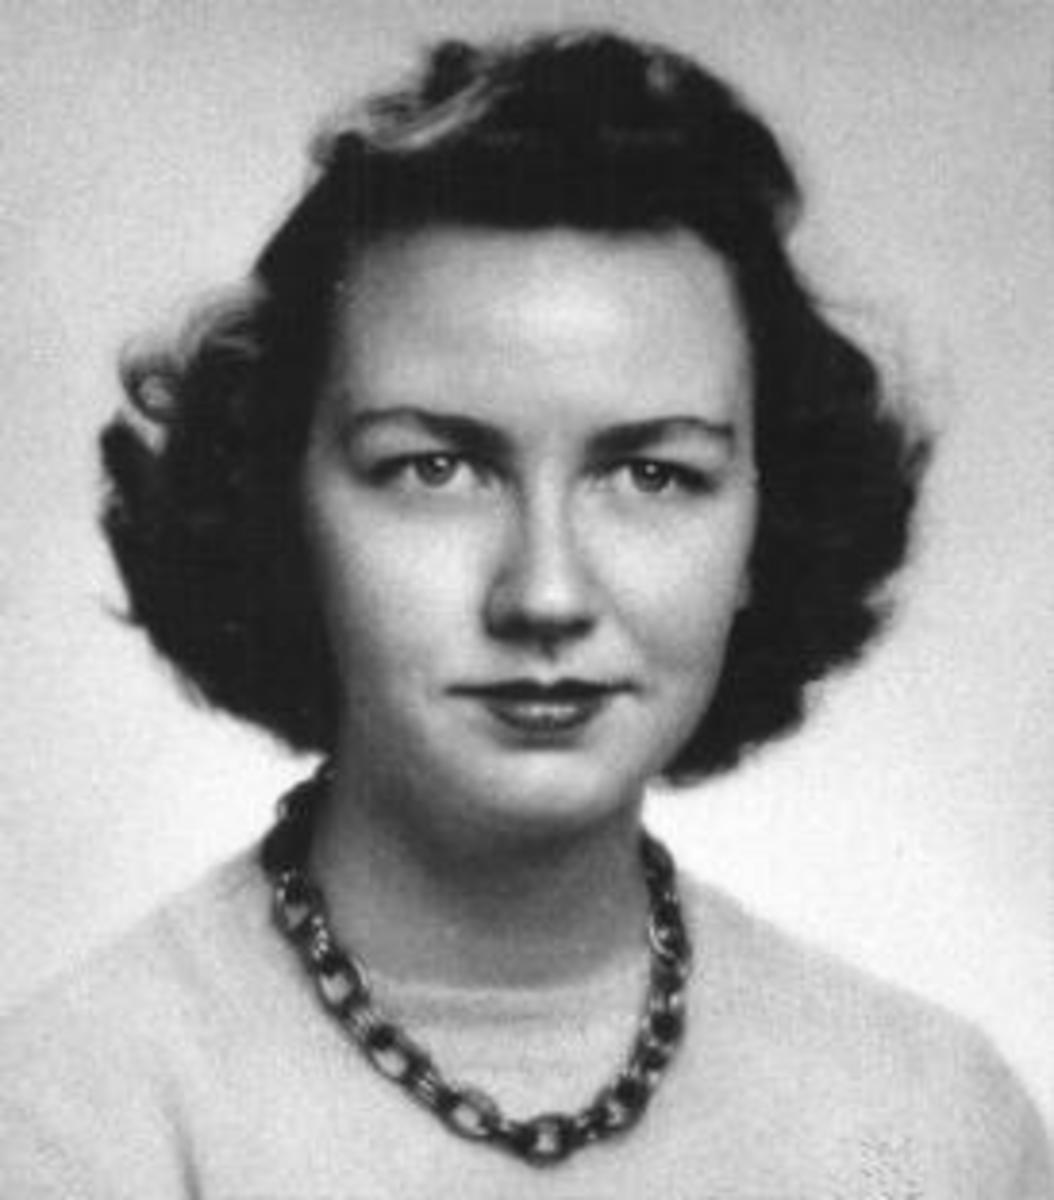 Are We Good Men and Women?  Flannery O'Connor Thinks